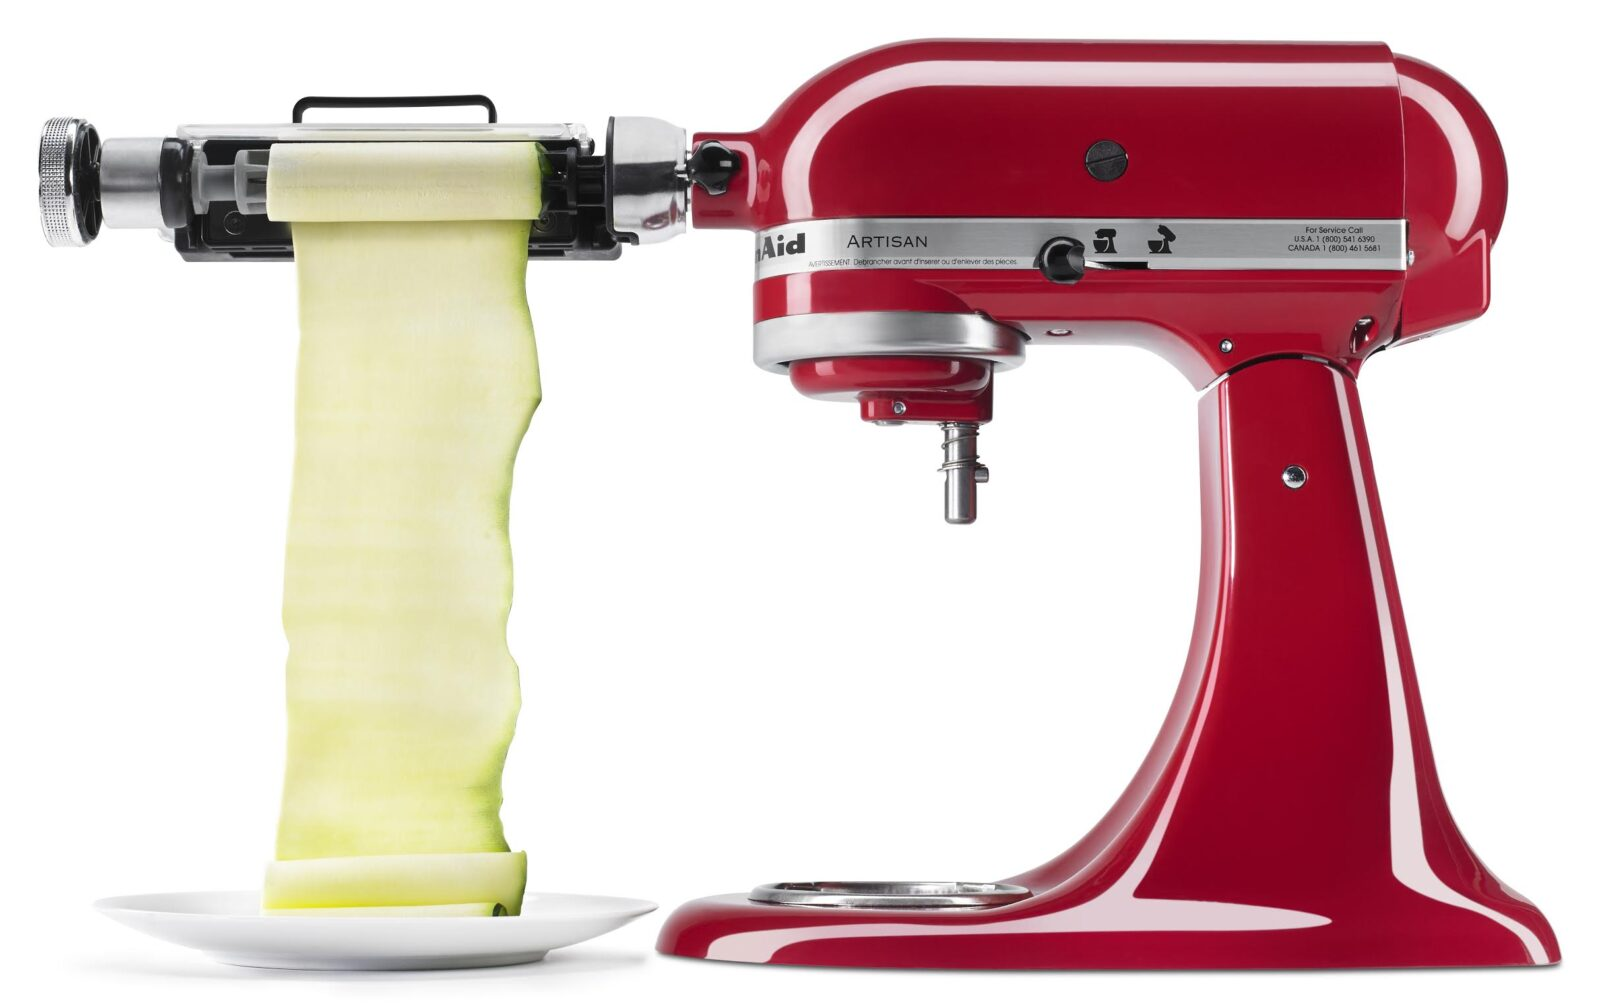 KitchenAid's Mini Mixer Vegetable Sheet Cutter Attachment